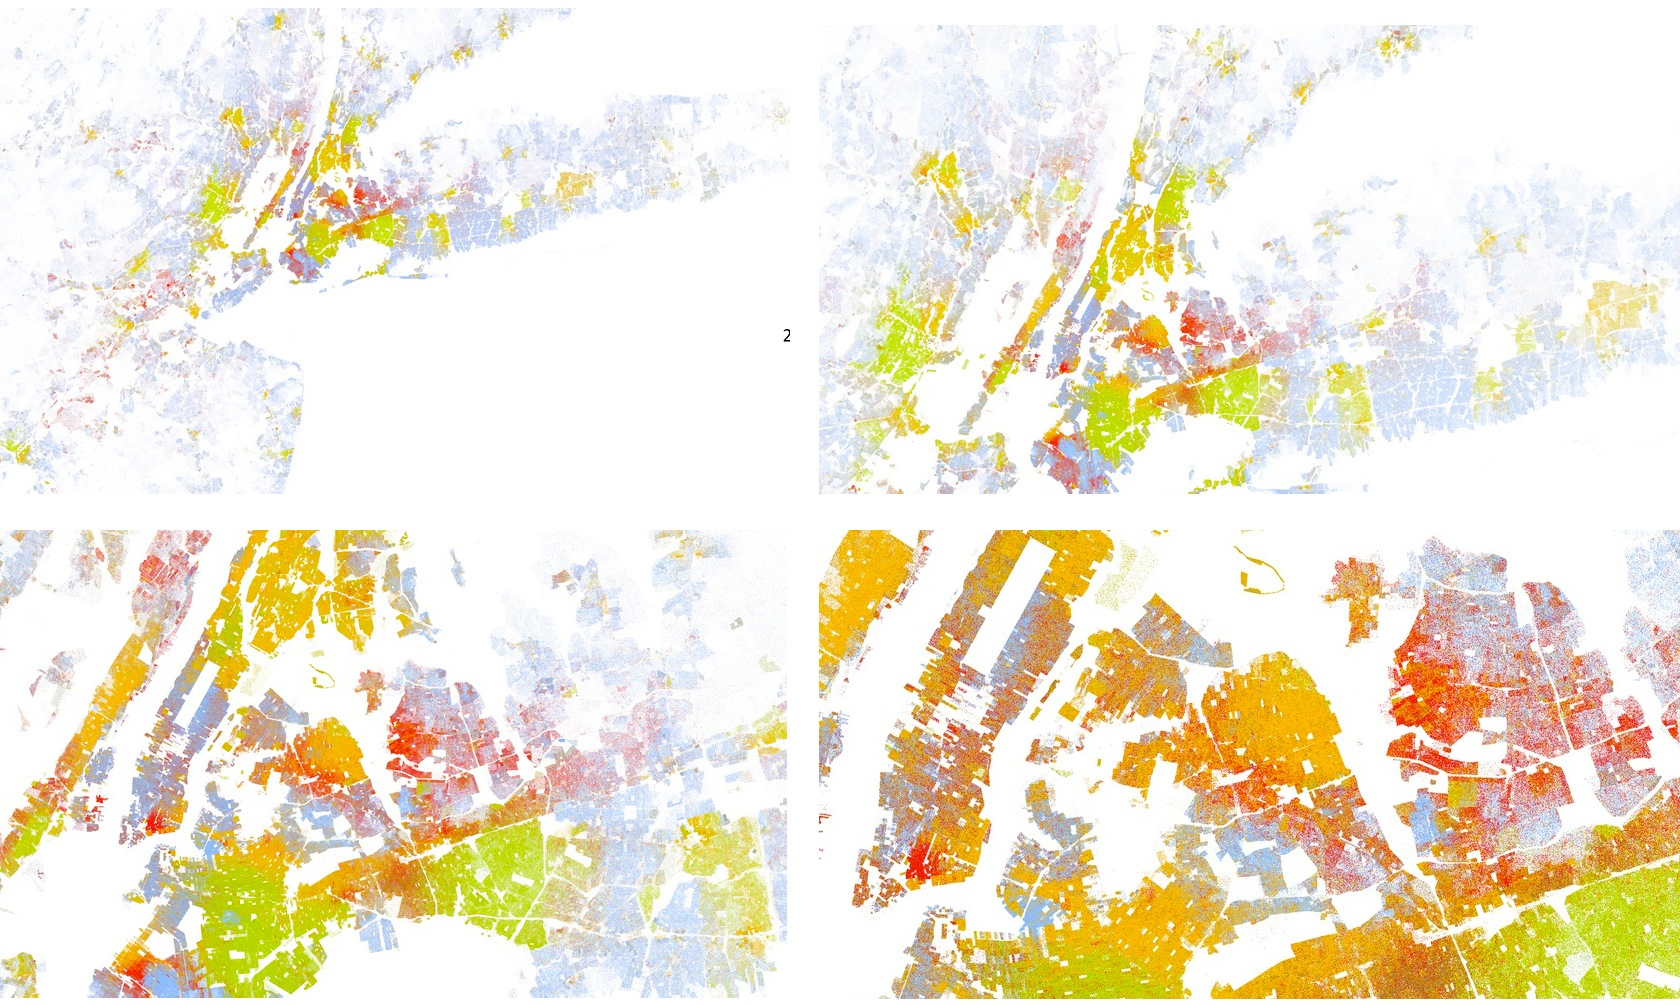 New York. corporeality (and color) based on magnification. (Click to enlarge.)